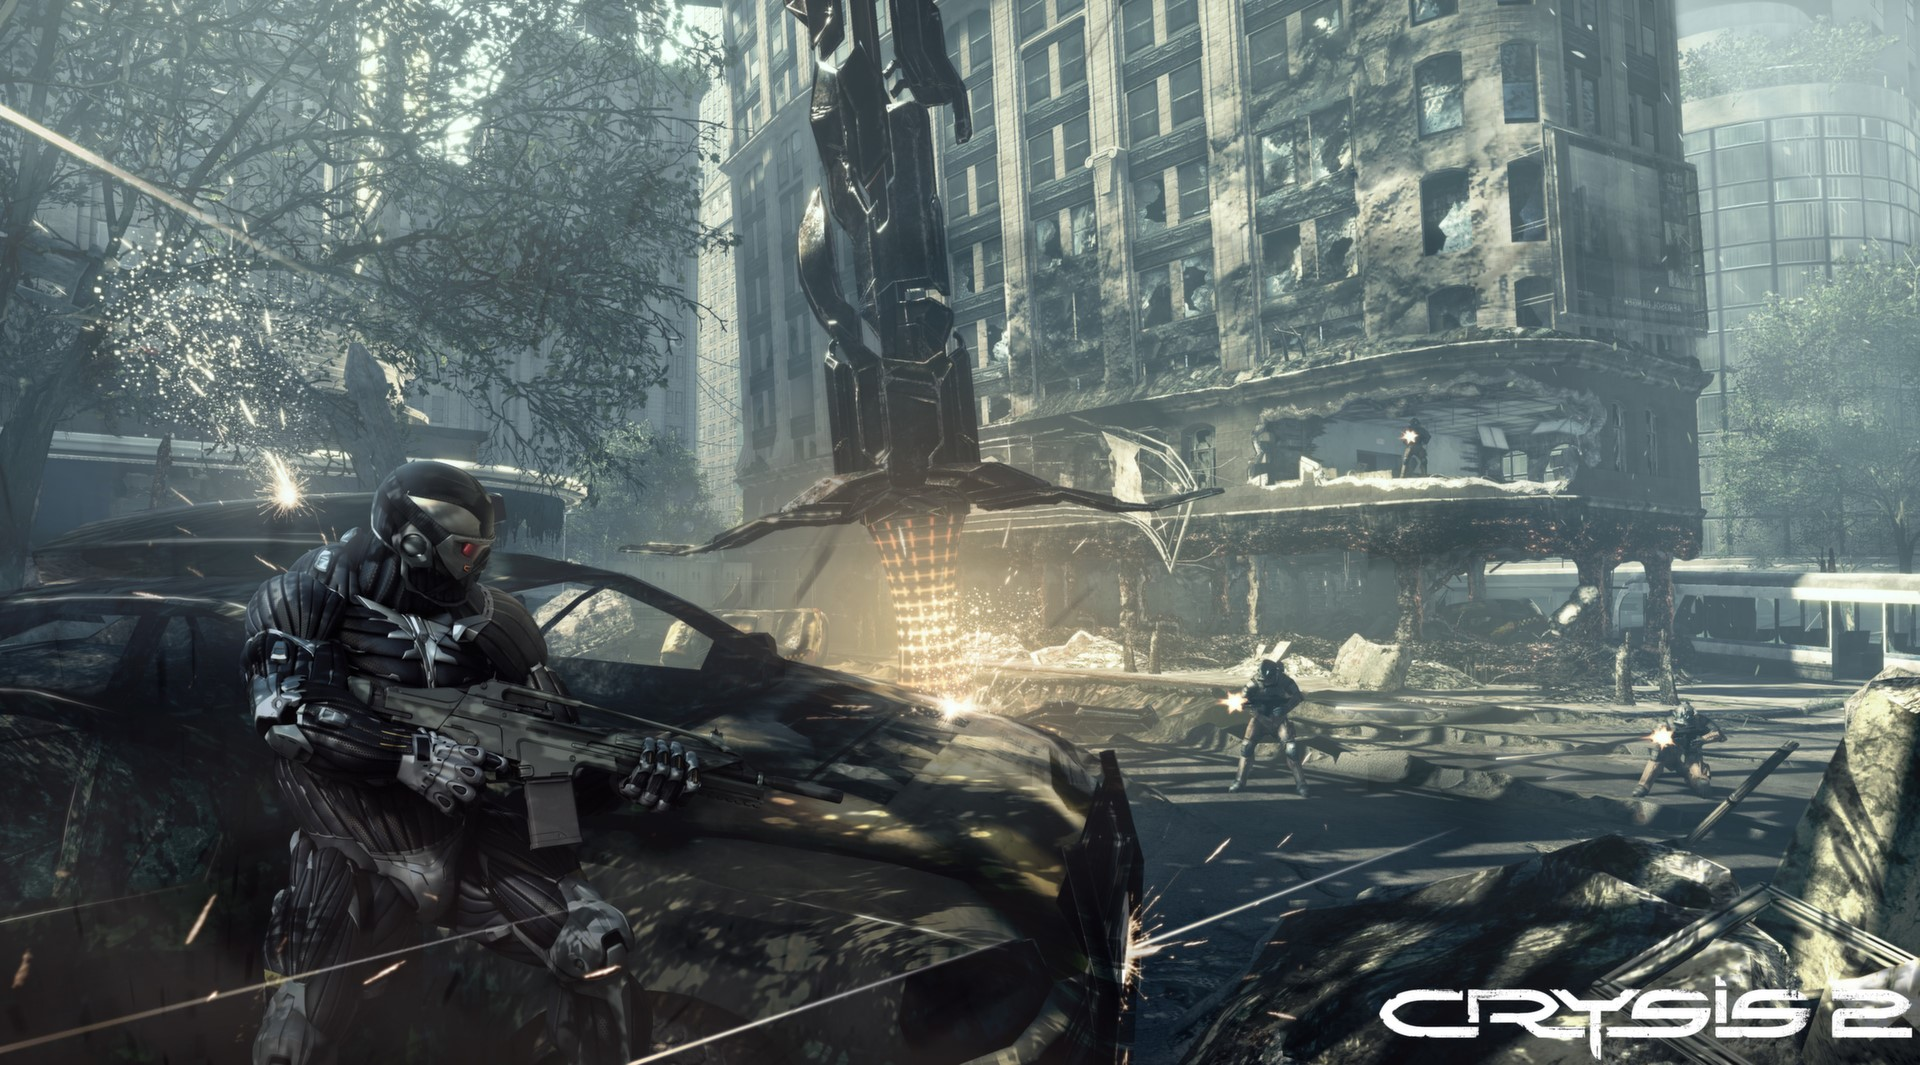 Crysis 2 Maximum Edition (Steam Gift Region Free / ROW)